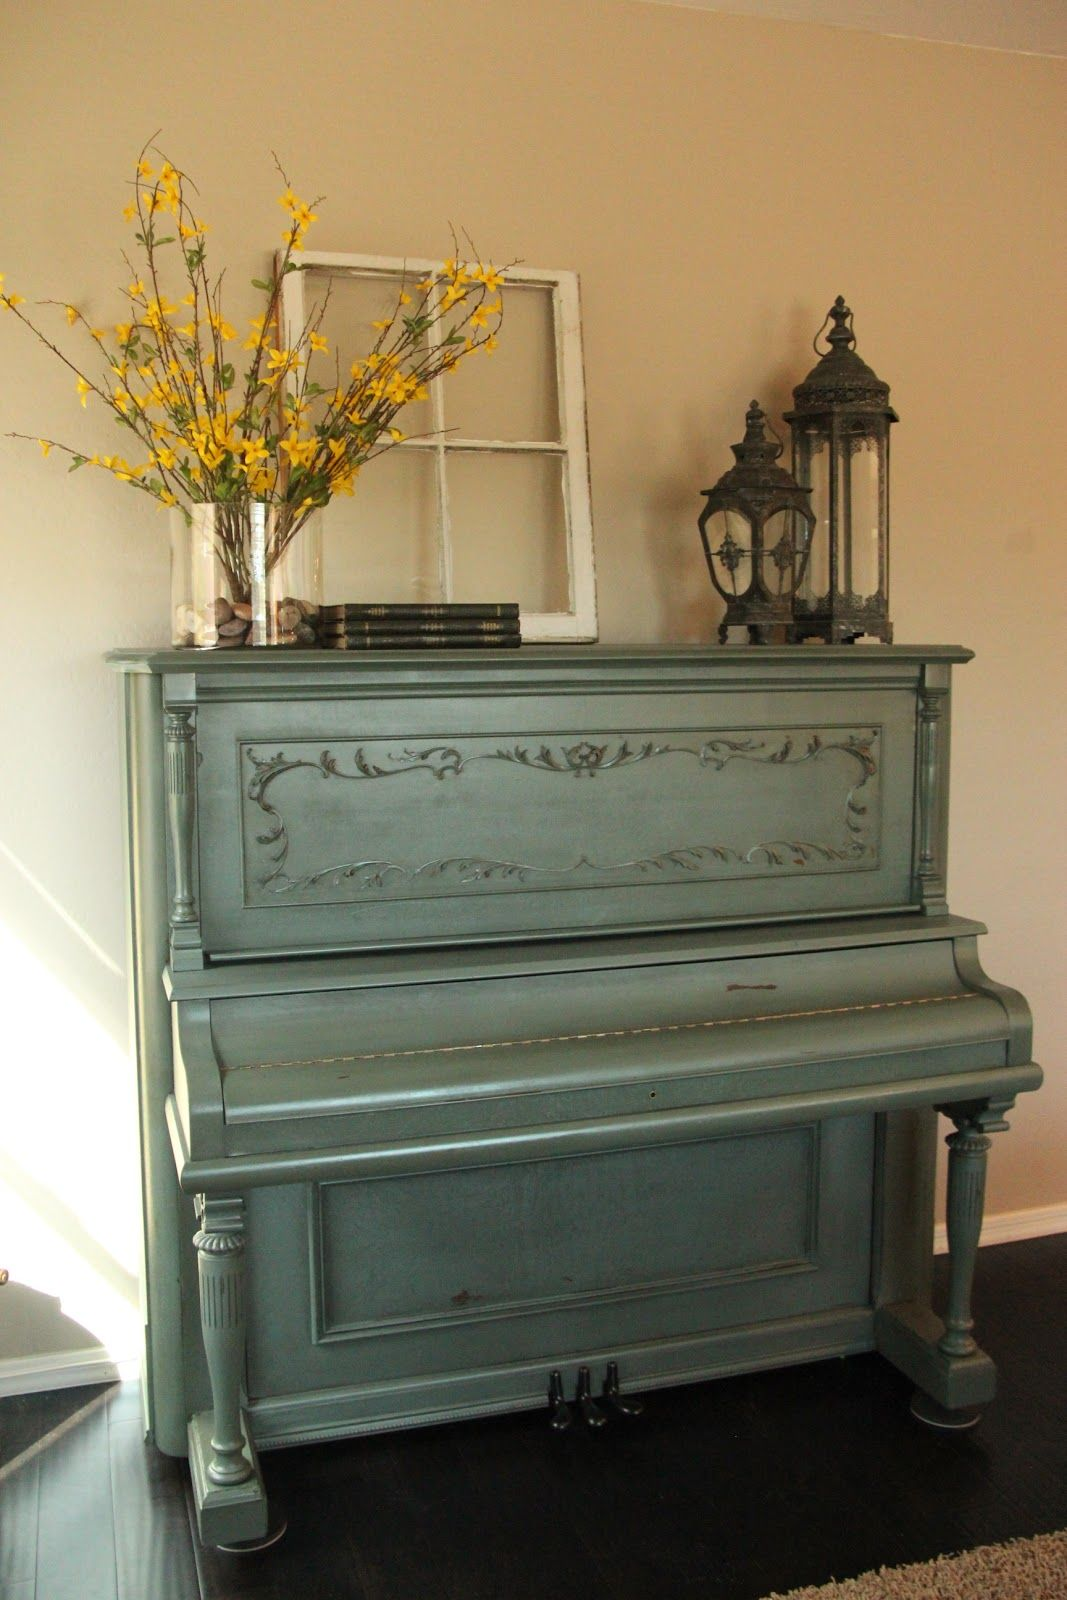 In my rustic dining room I will have my China hutch and piano